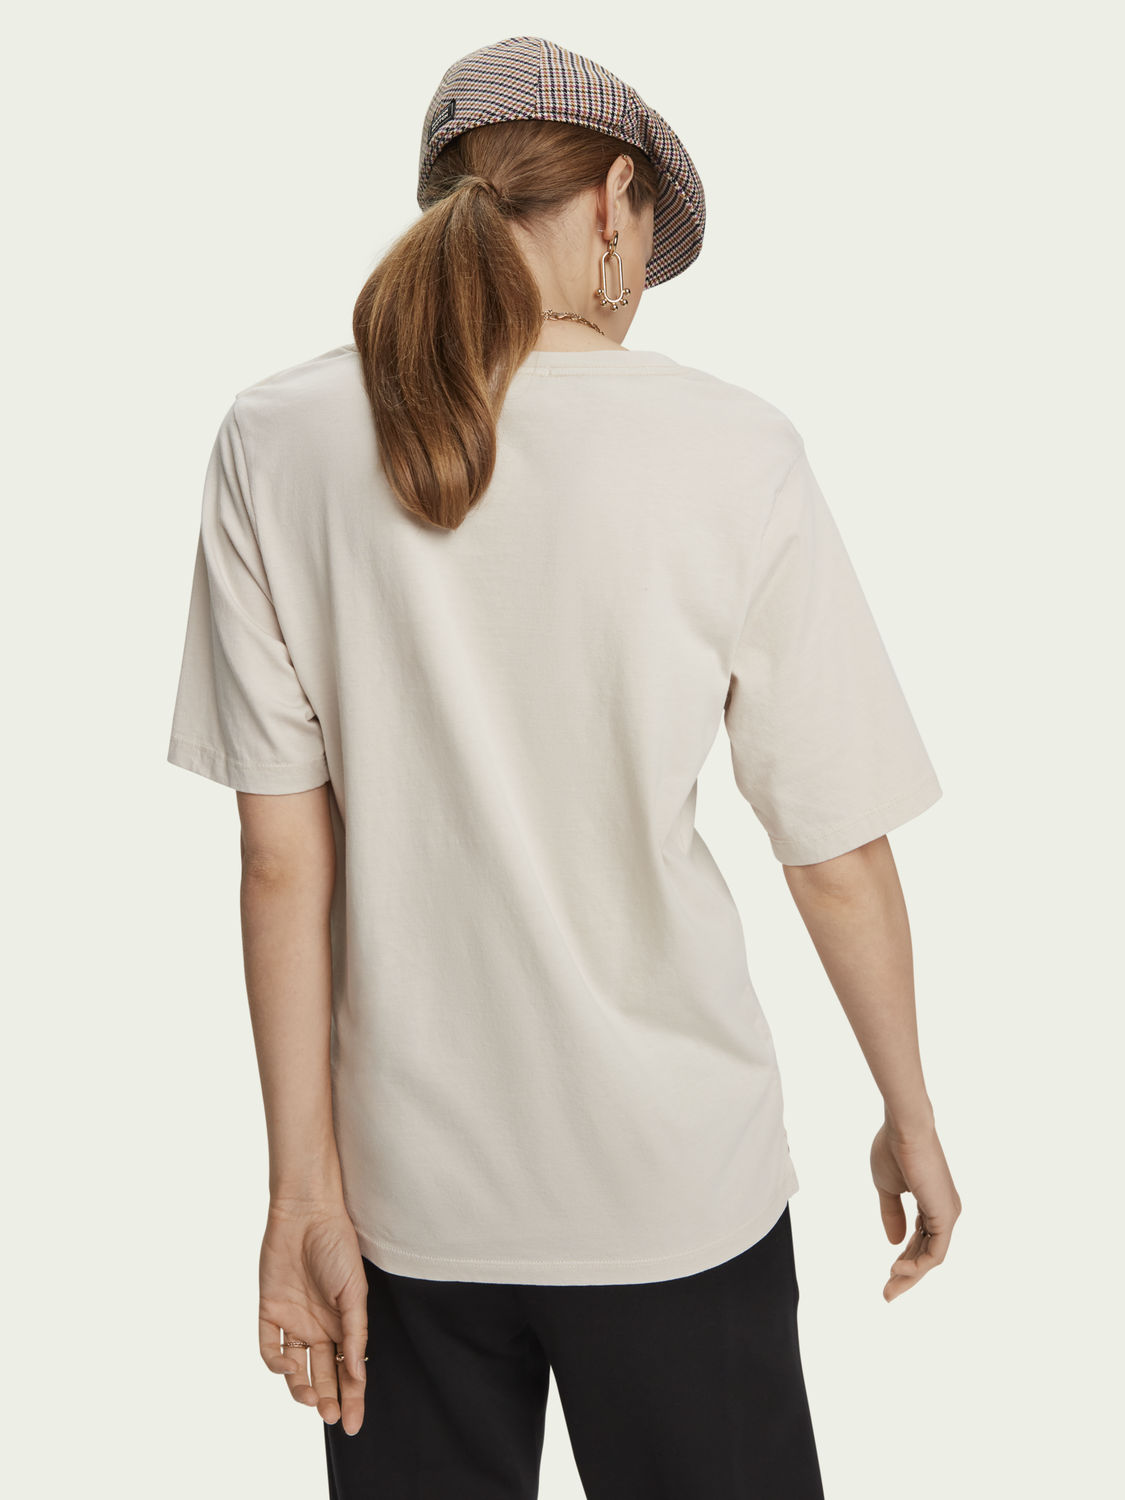 Women Relaxed fit short sleeve t-shirt